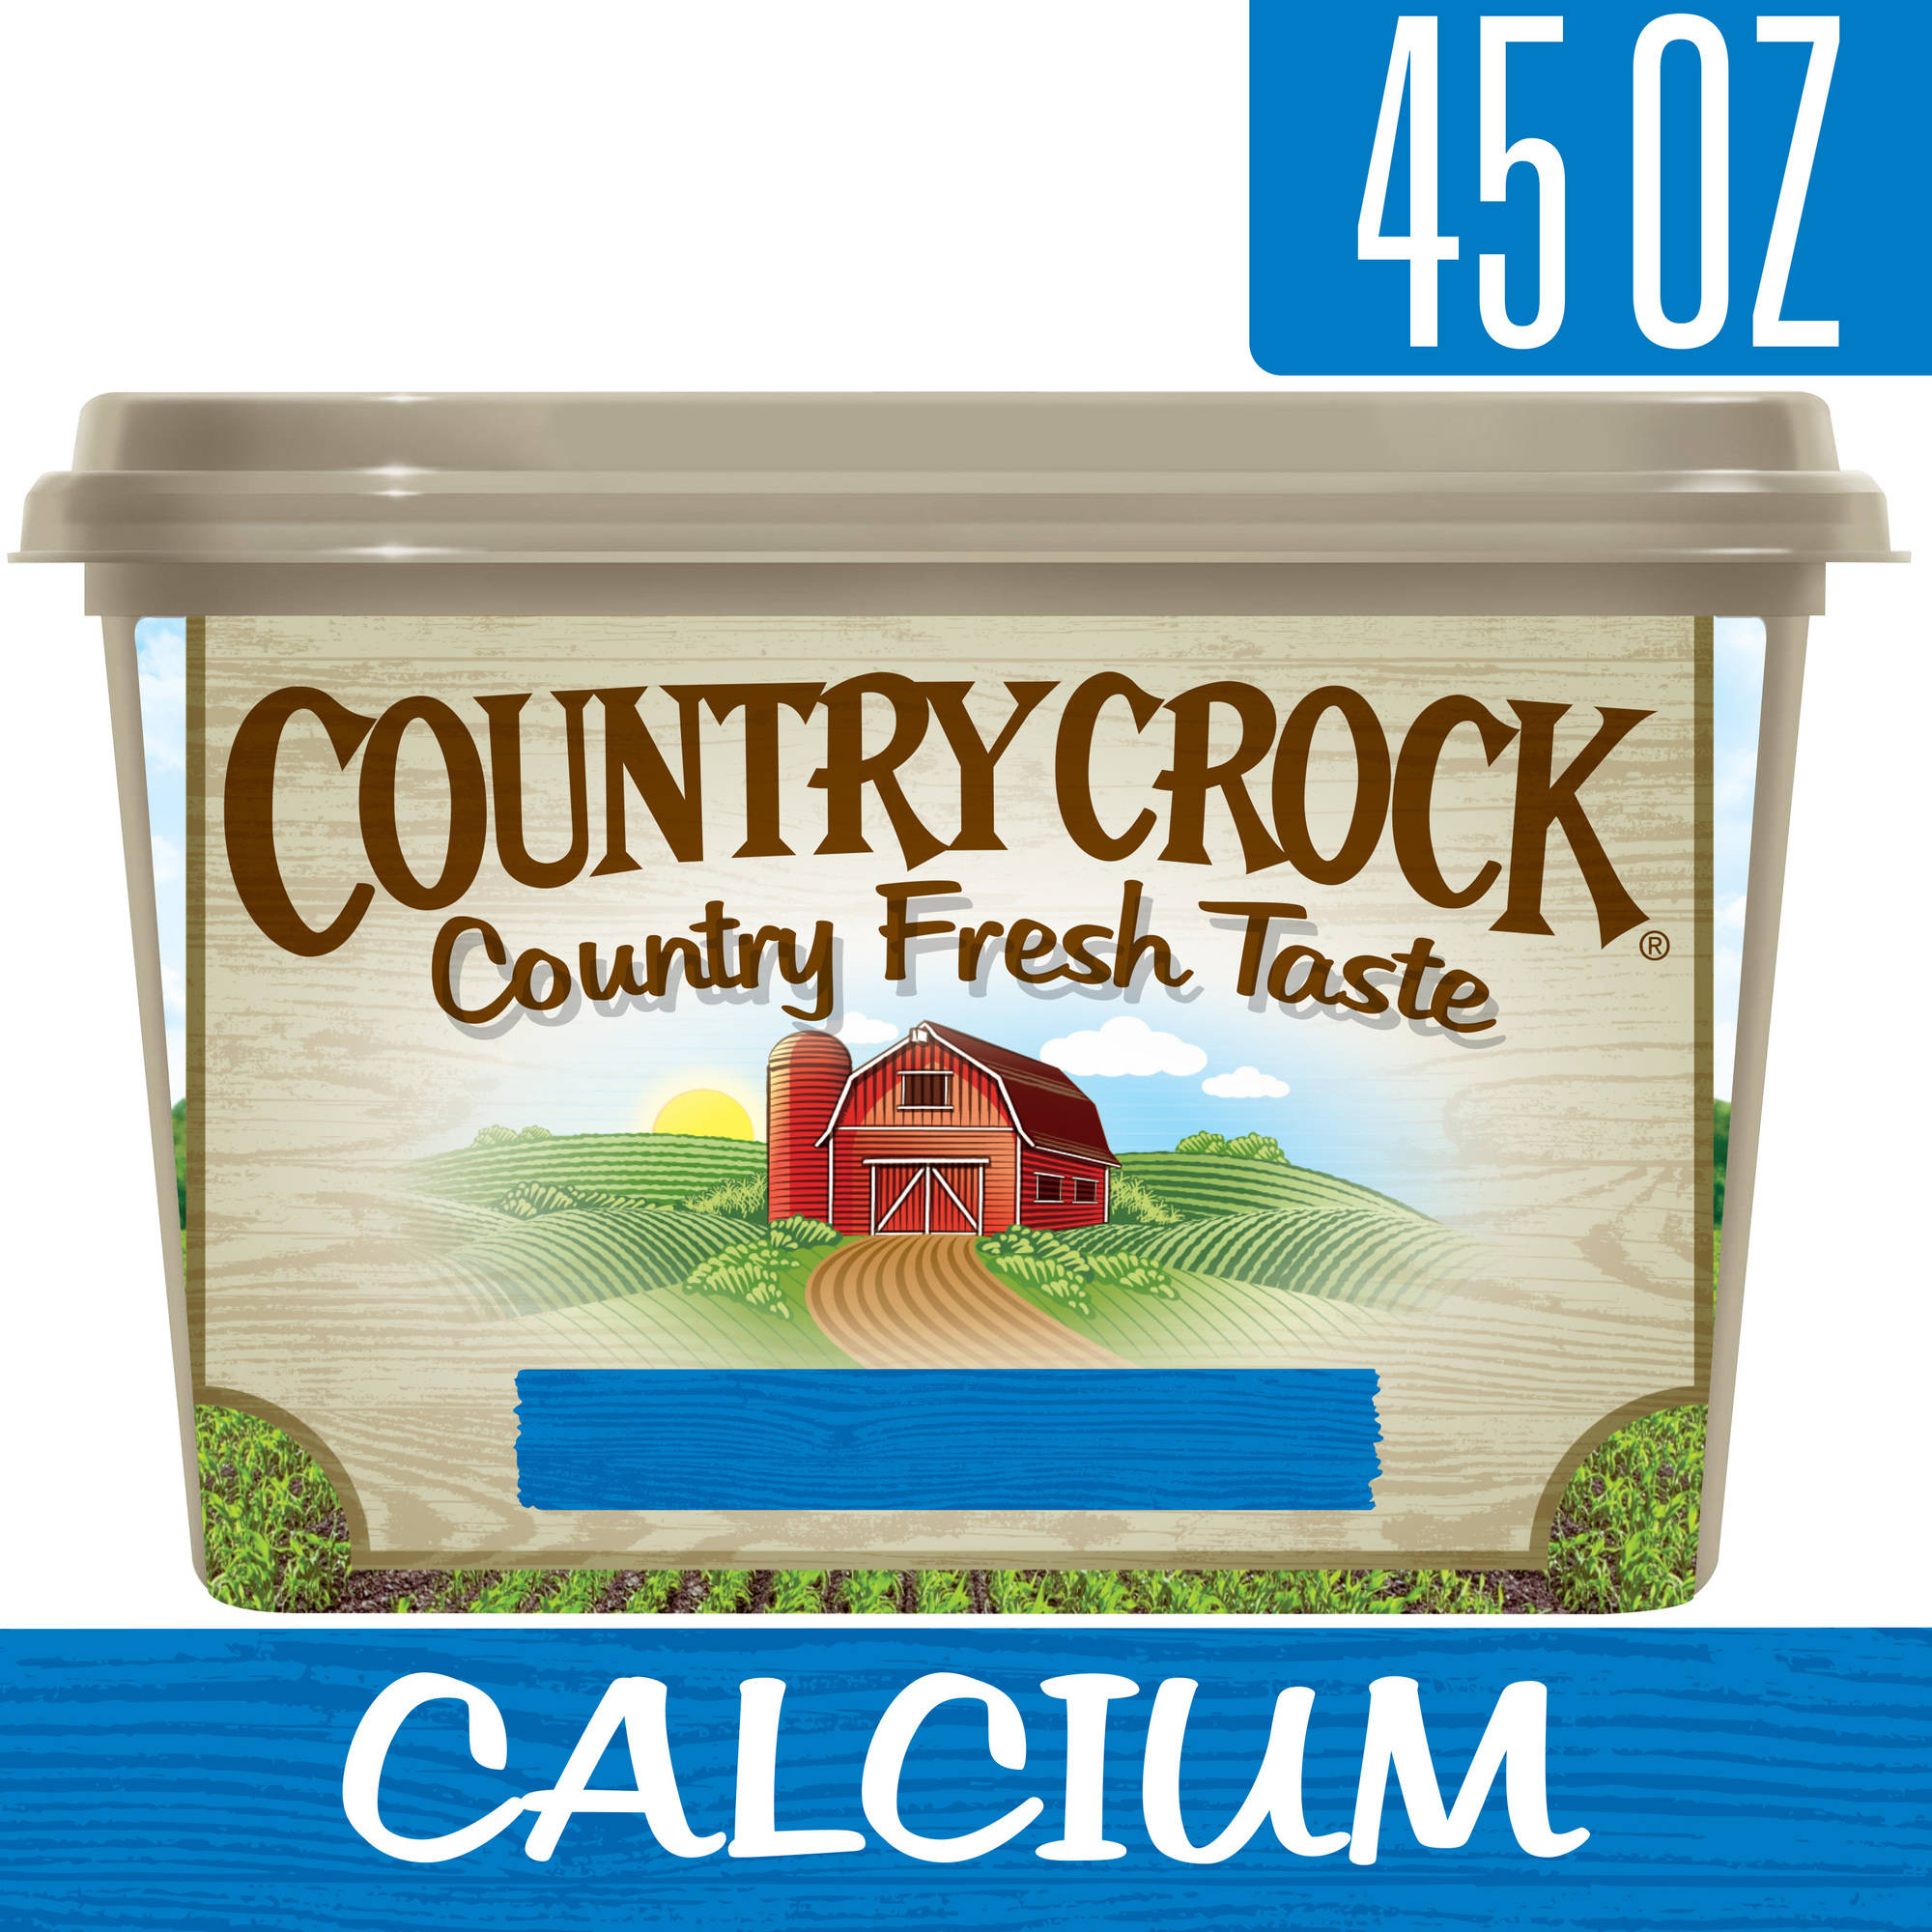 Country Crock Calcium Vegetable Oil Spread Tub, 45 oz